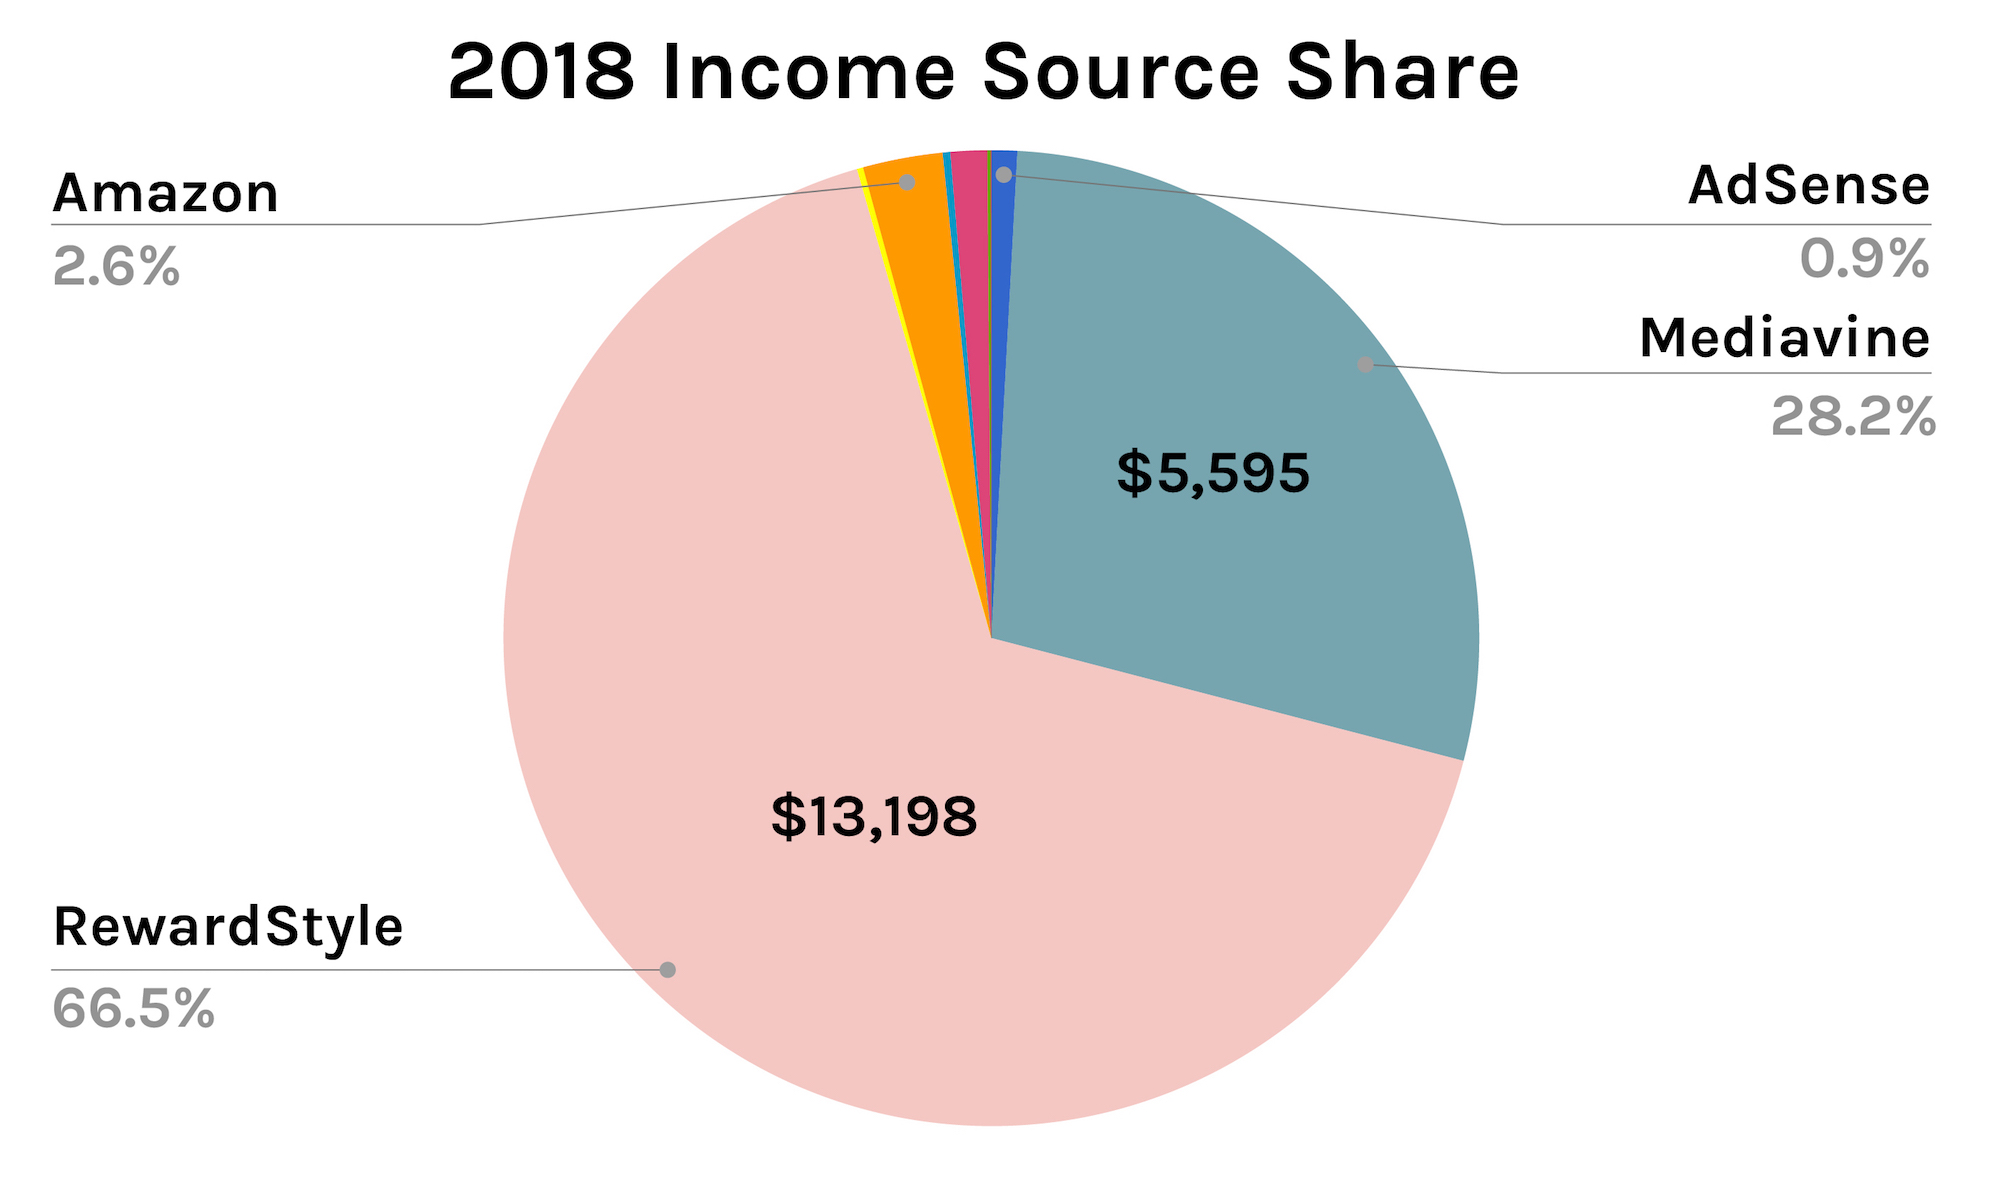 2018 Income Source Share